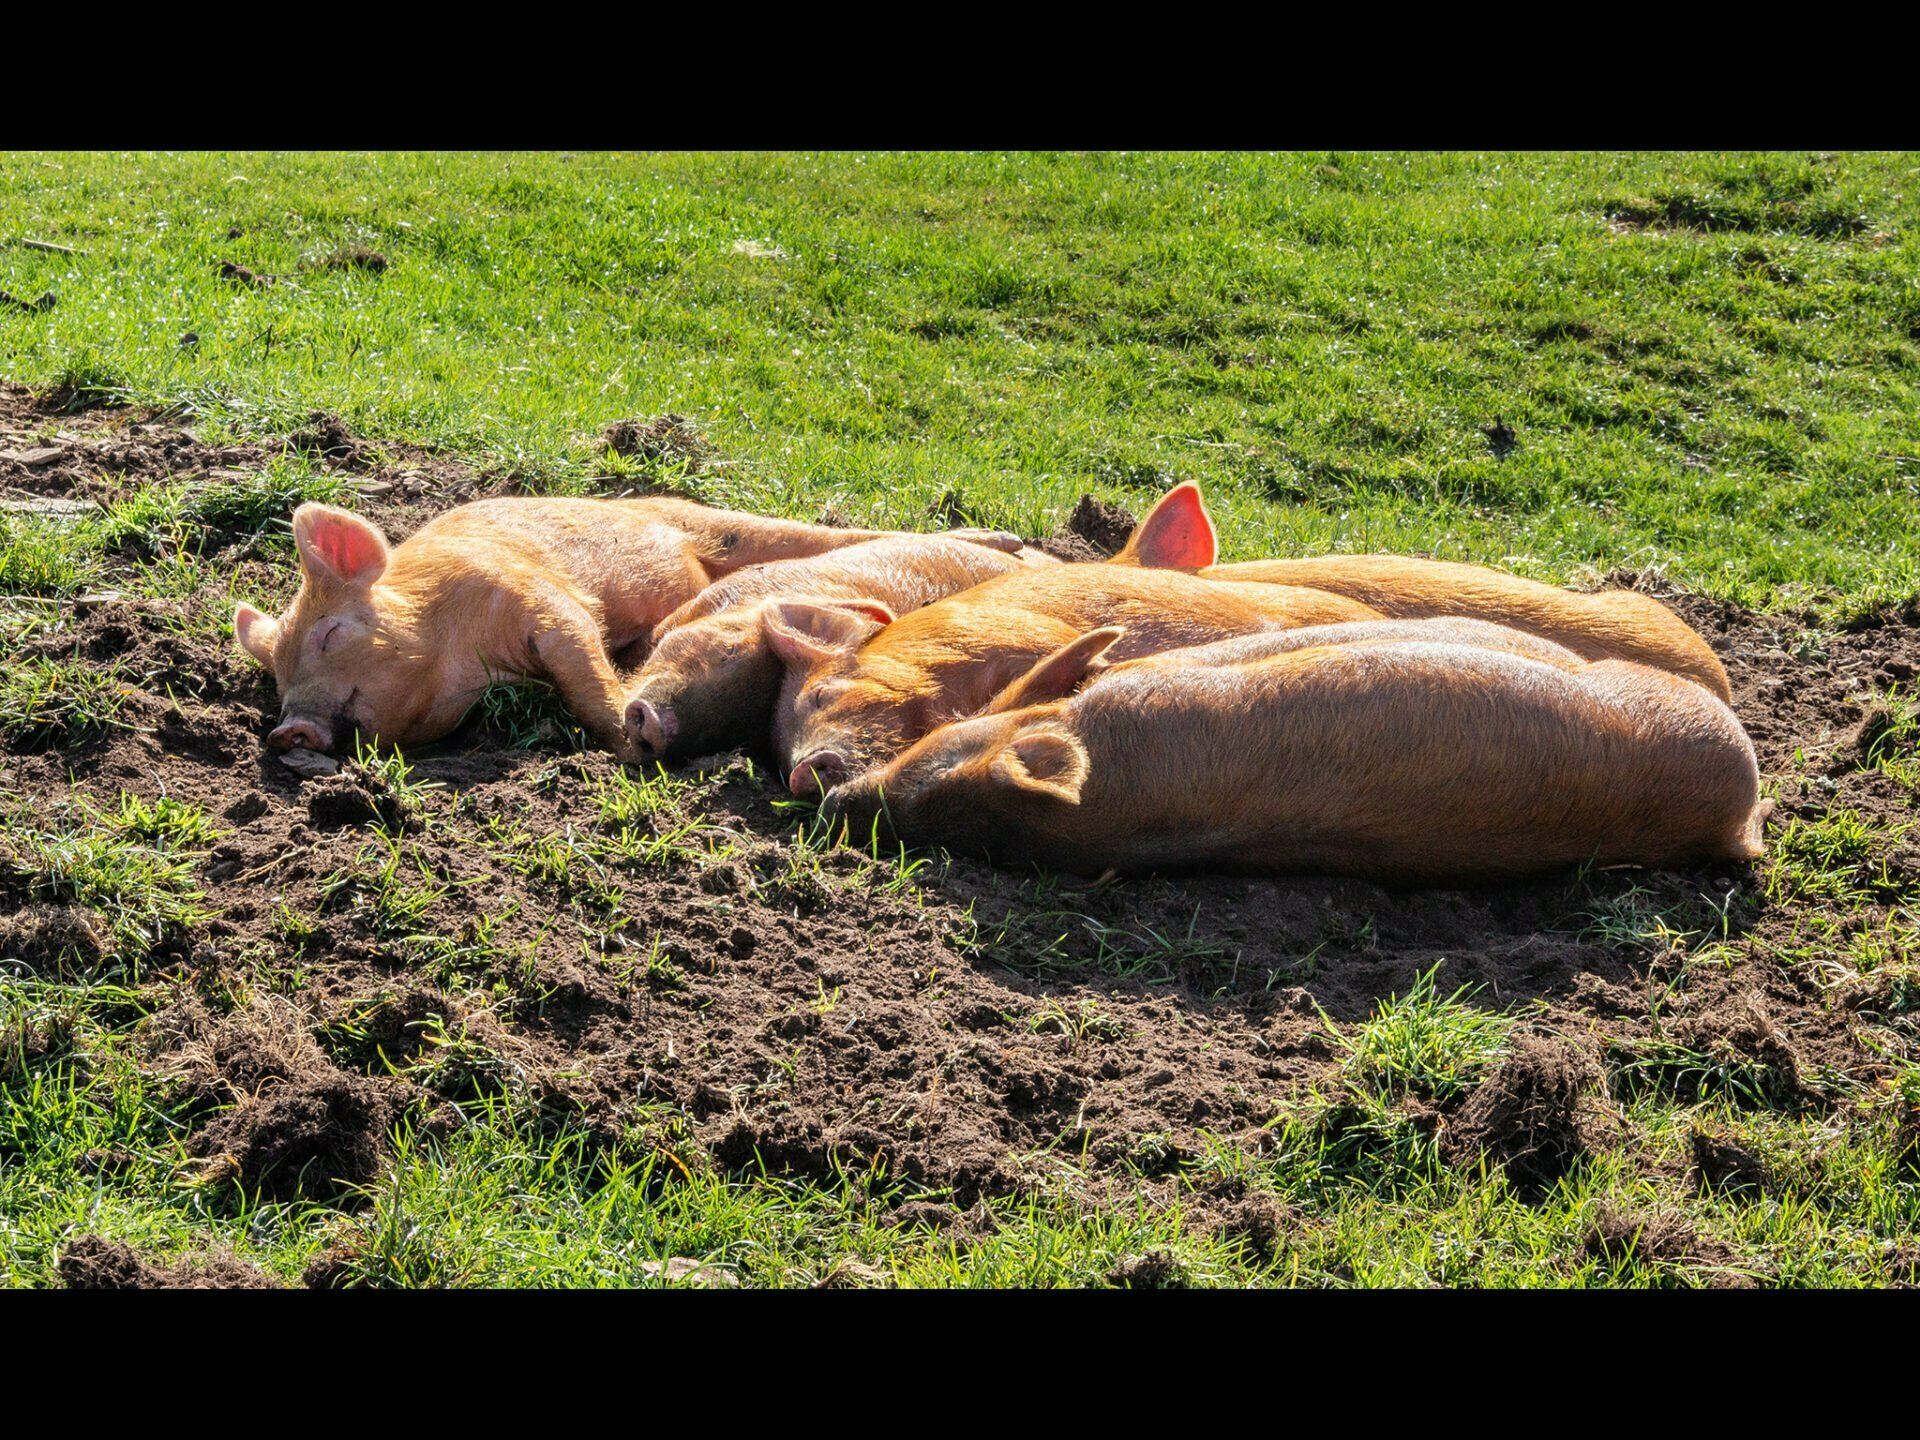 Piglets asleep in the sun